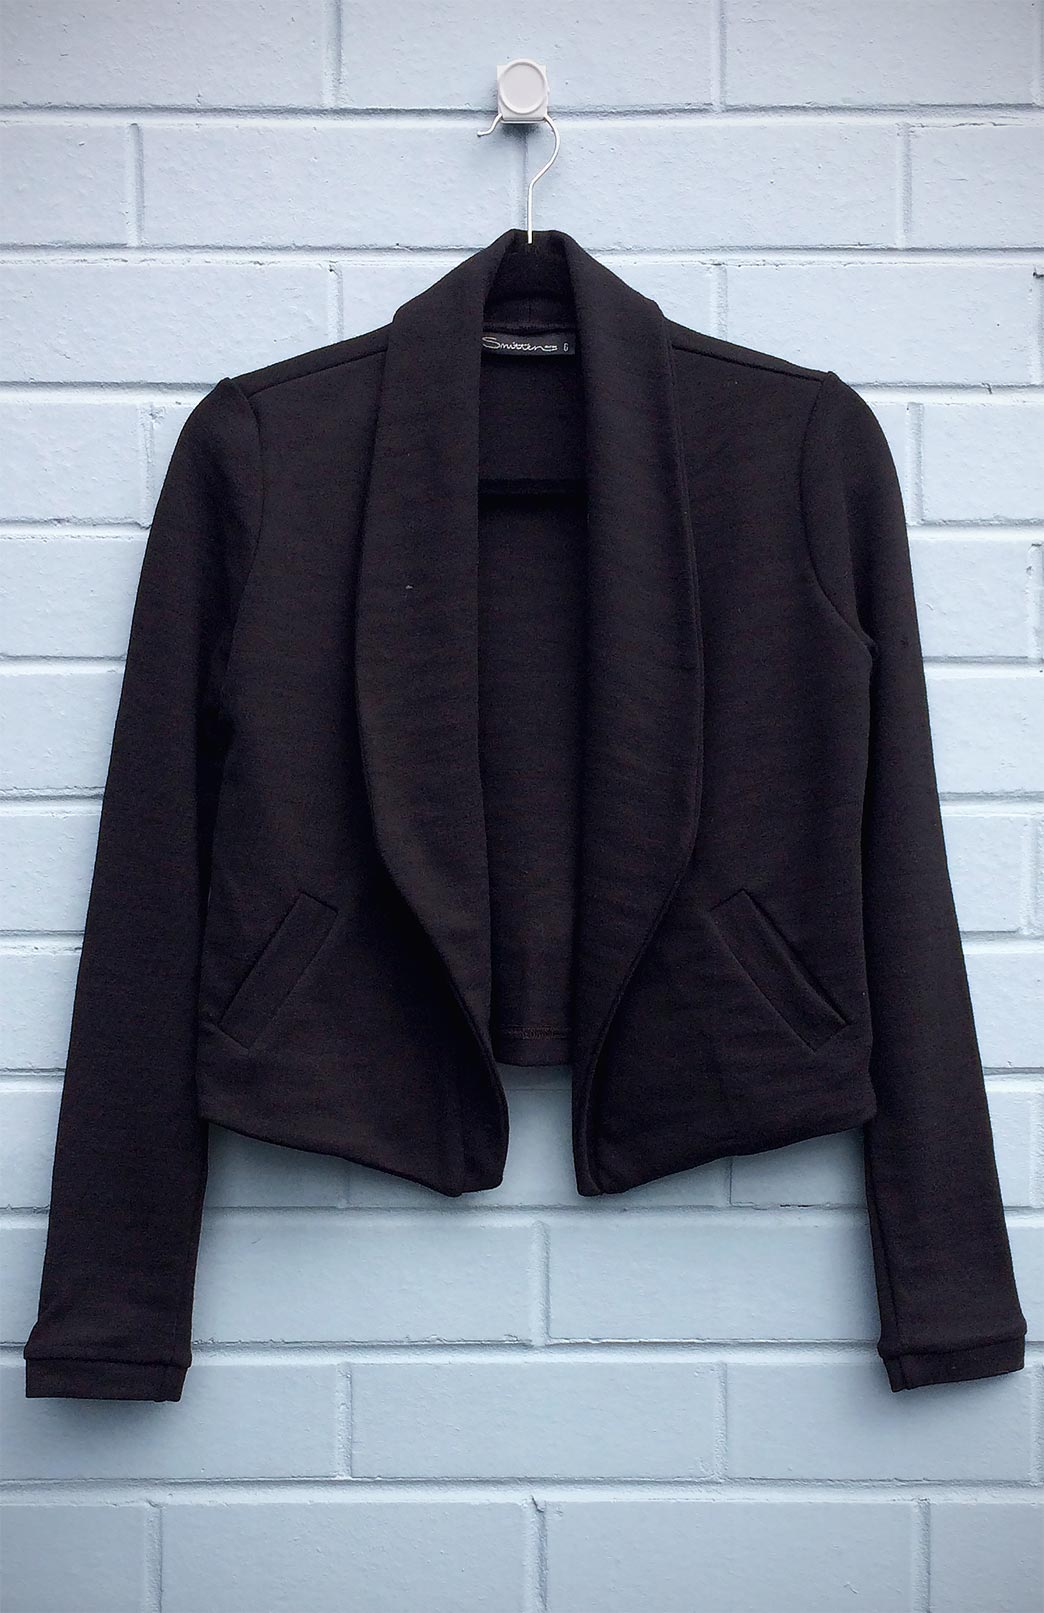 Lapel Jacket - Heavyweight (Seconds) - Women's Black Heavyweight Pure Merino Wool Jacket with Lapel Detailing and Side Pockets - Smitten Merino Tasmania Australia